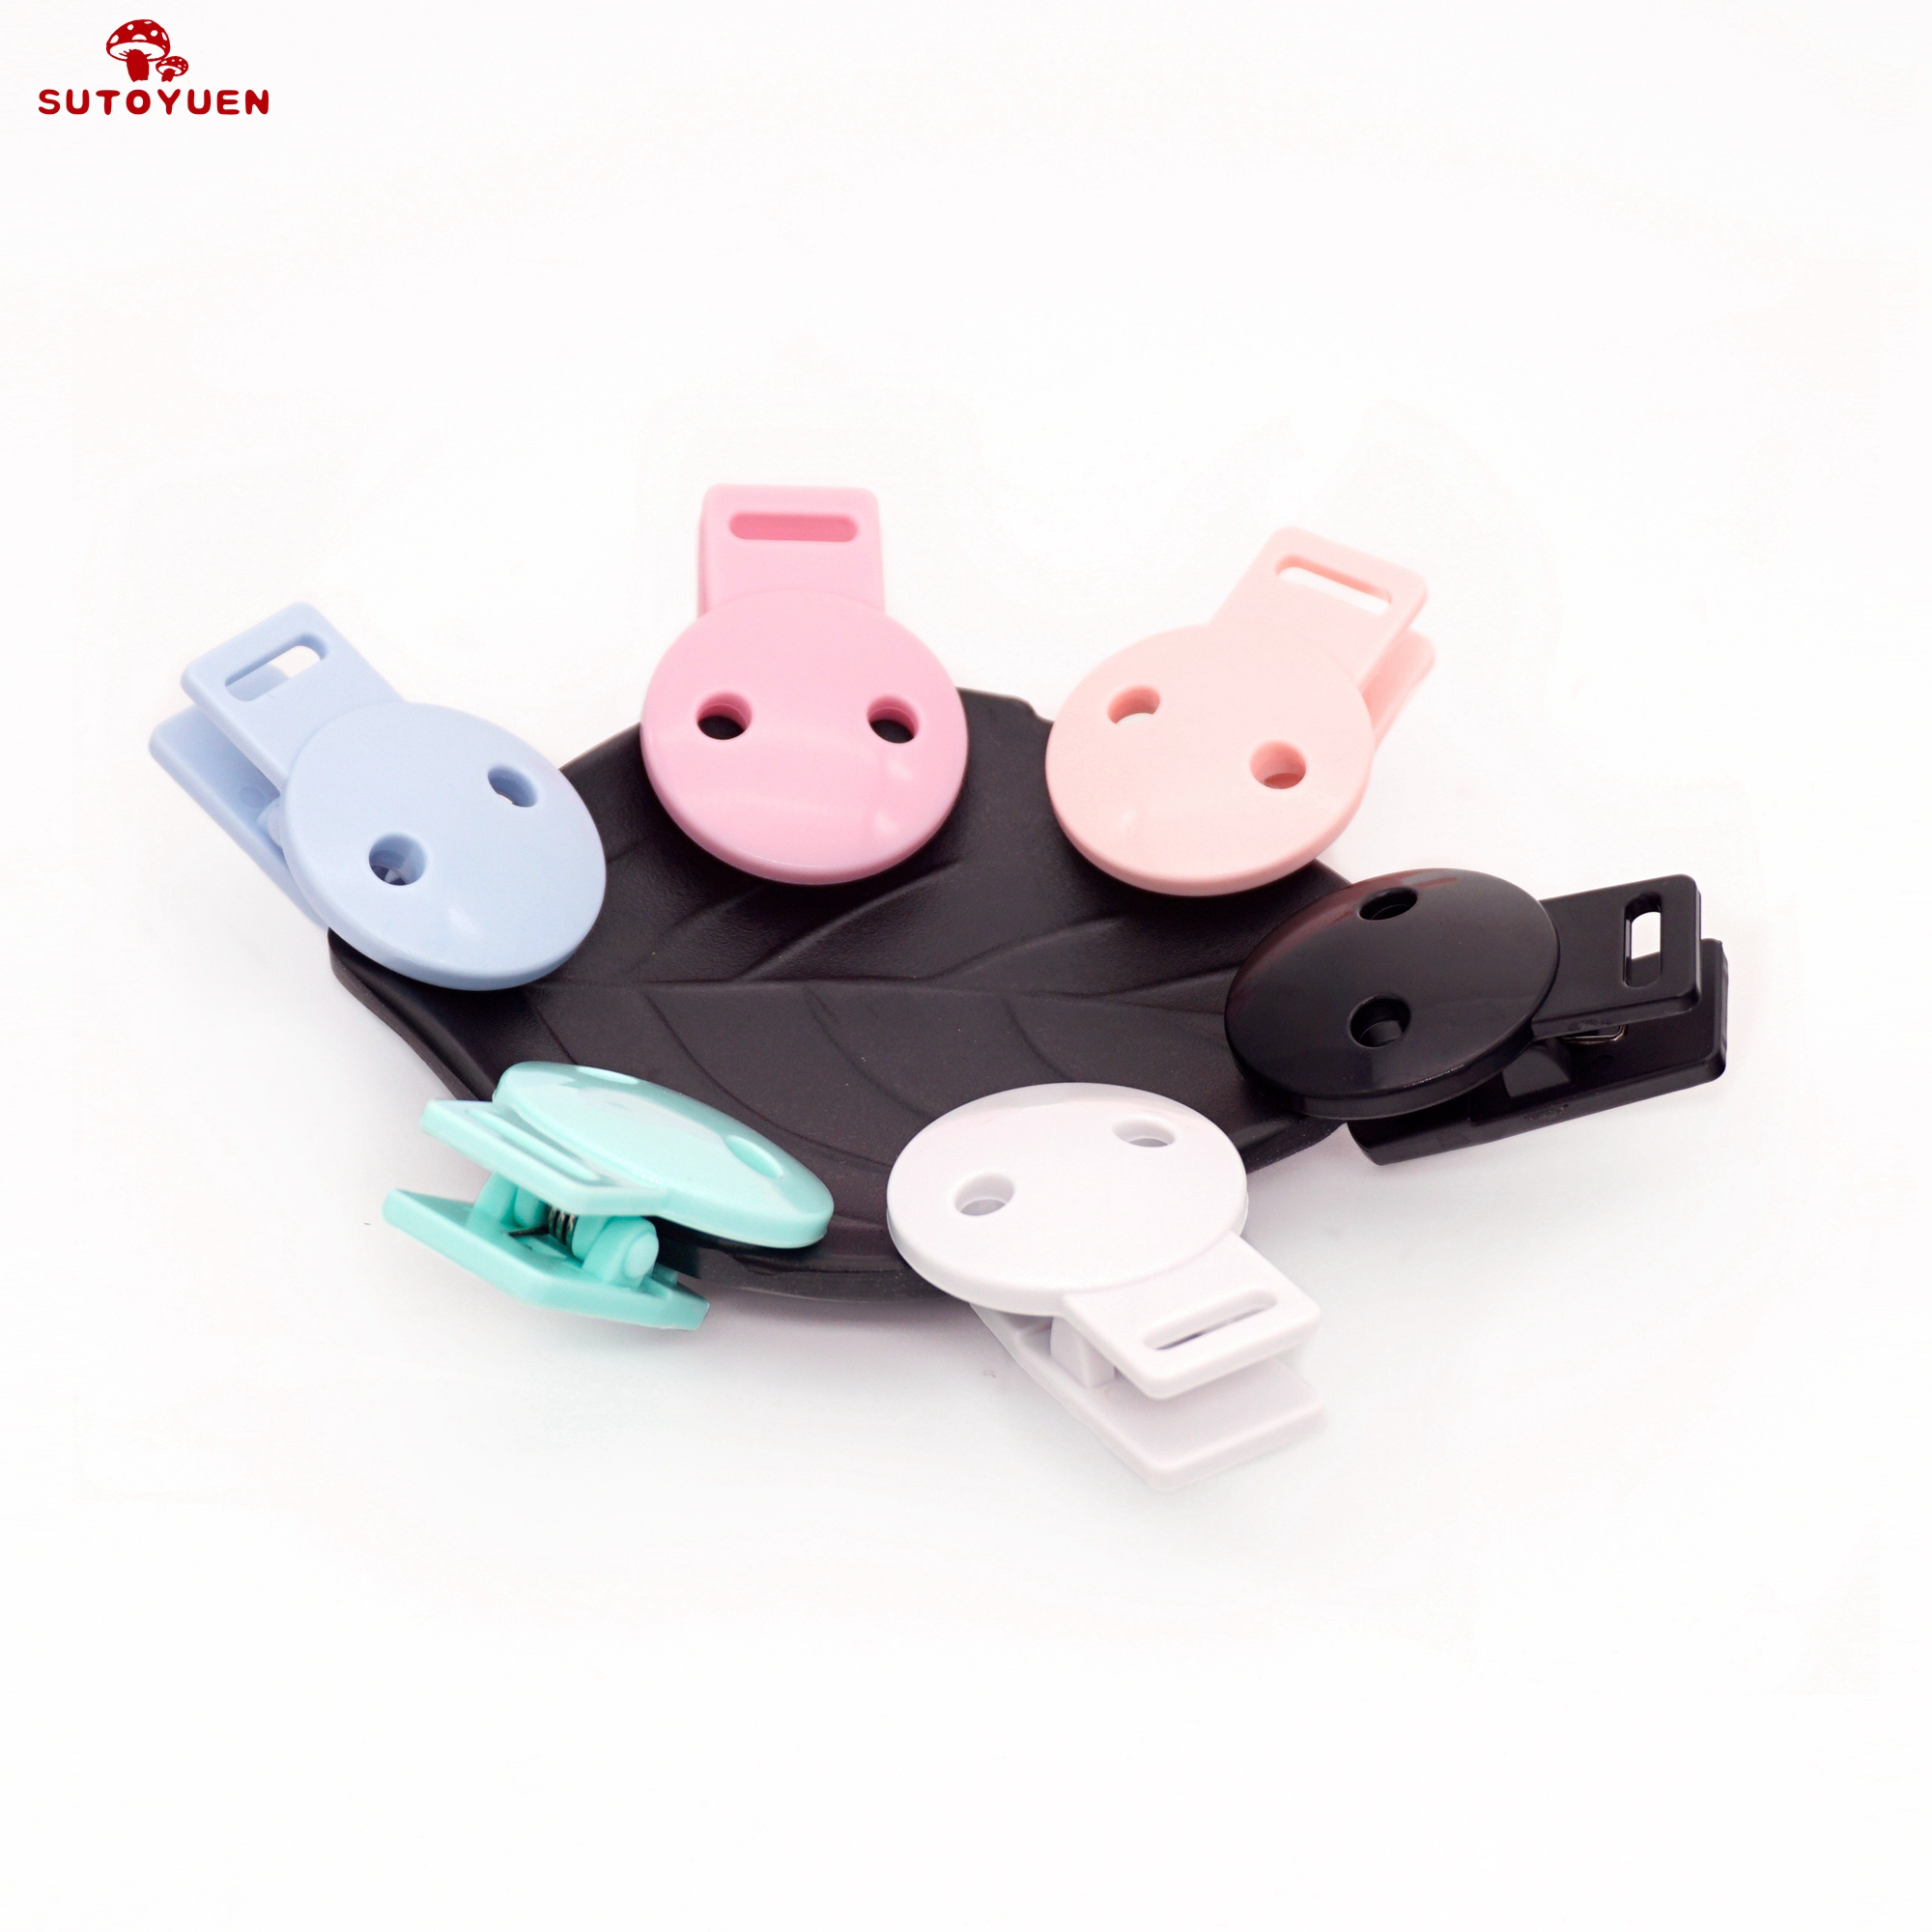 Sutoyuen 50pcs Baby Round Head Pacifier Clips Infant Safe Dummy Soother Clip DIY Plastic Pacifier Holder Teether Accessories